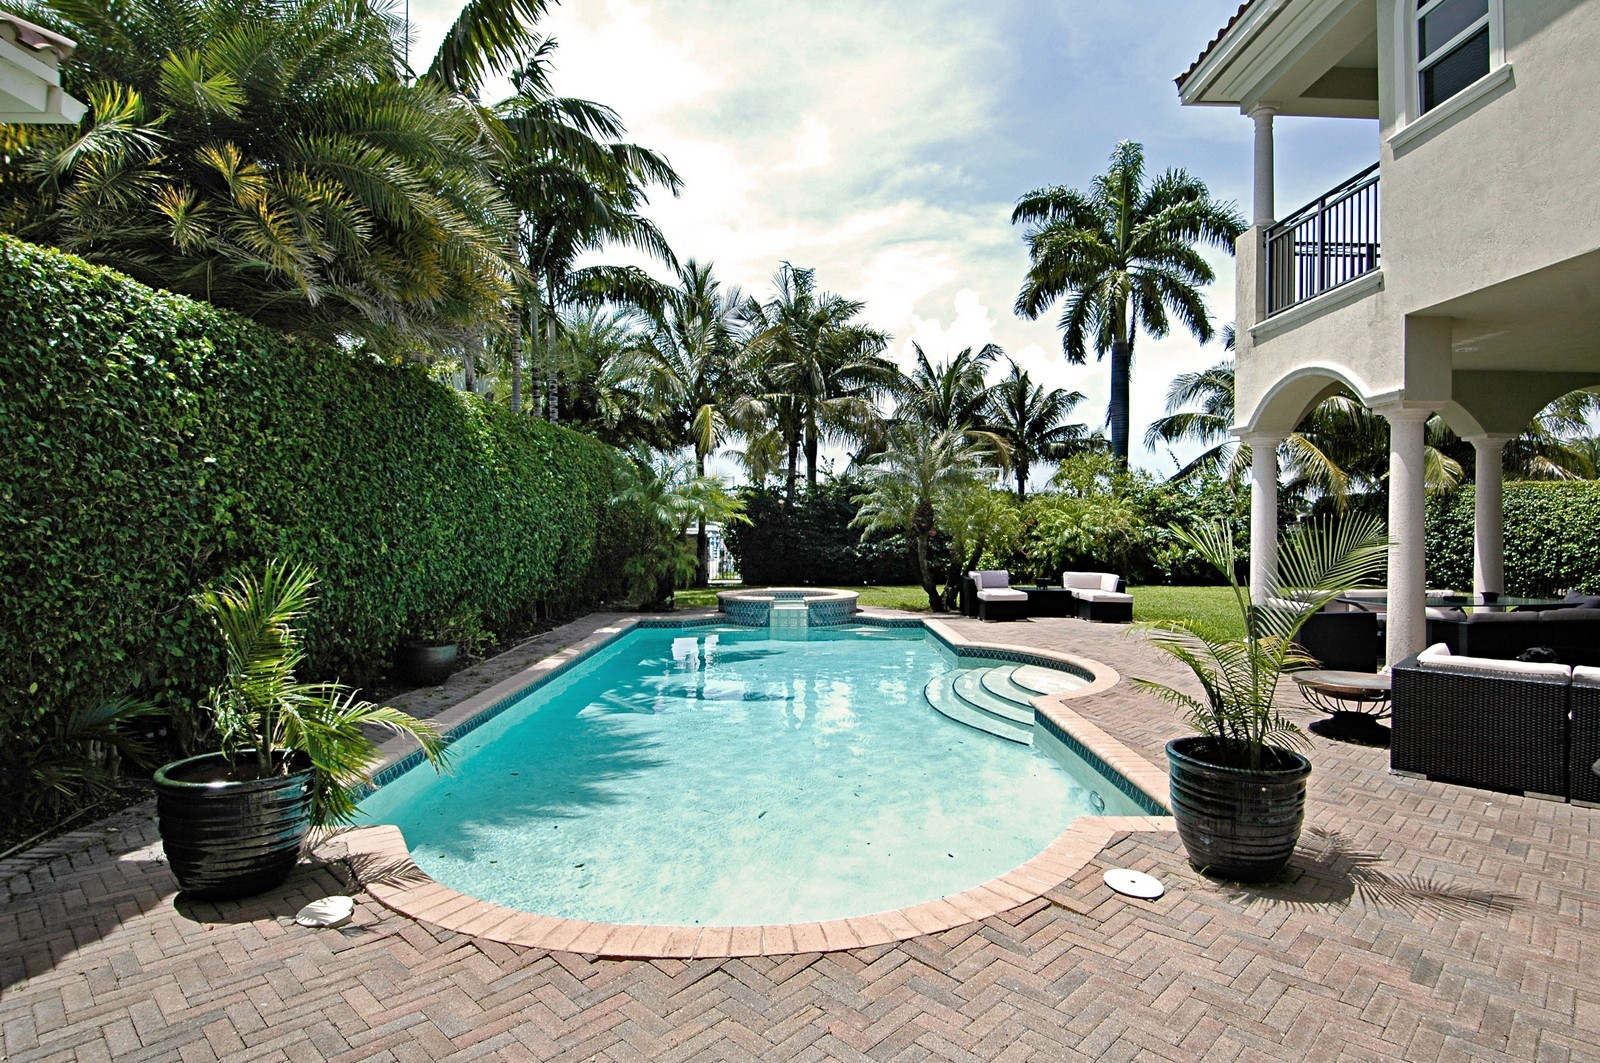 Real Estate Photography - 1260 Hatteras Ln, Hollywood, FL, 33019 - Pool